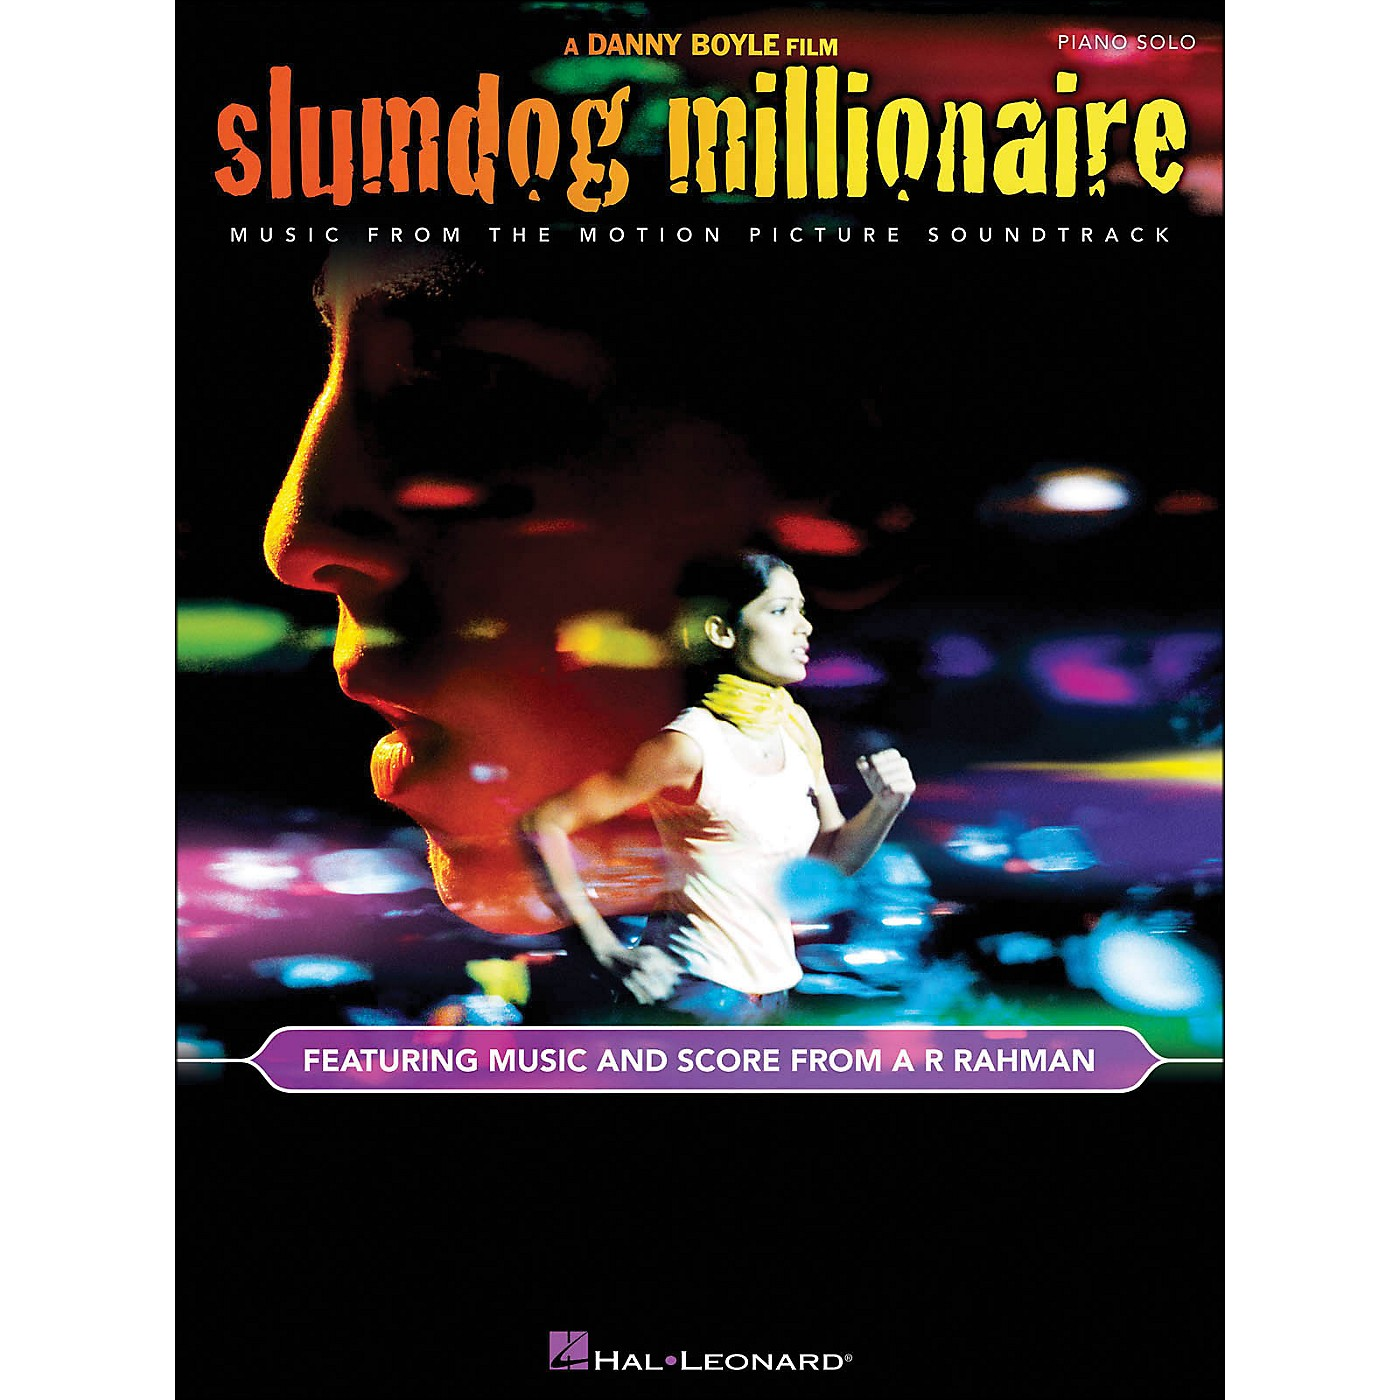 Hal Leonard Slumdog Millionaire - Music From The Motion Picture Soundtrack arranged for piano, vocal, and guitar (P/V/G) thumbnail